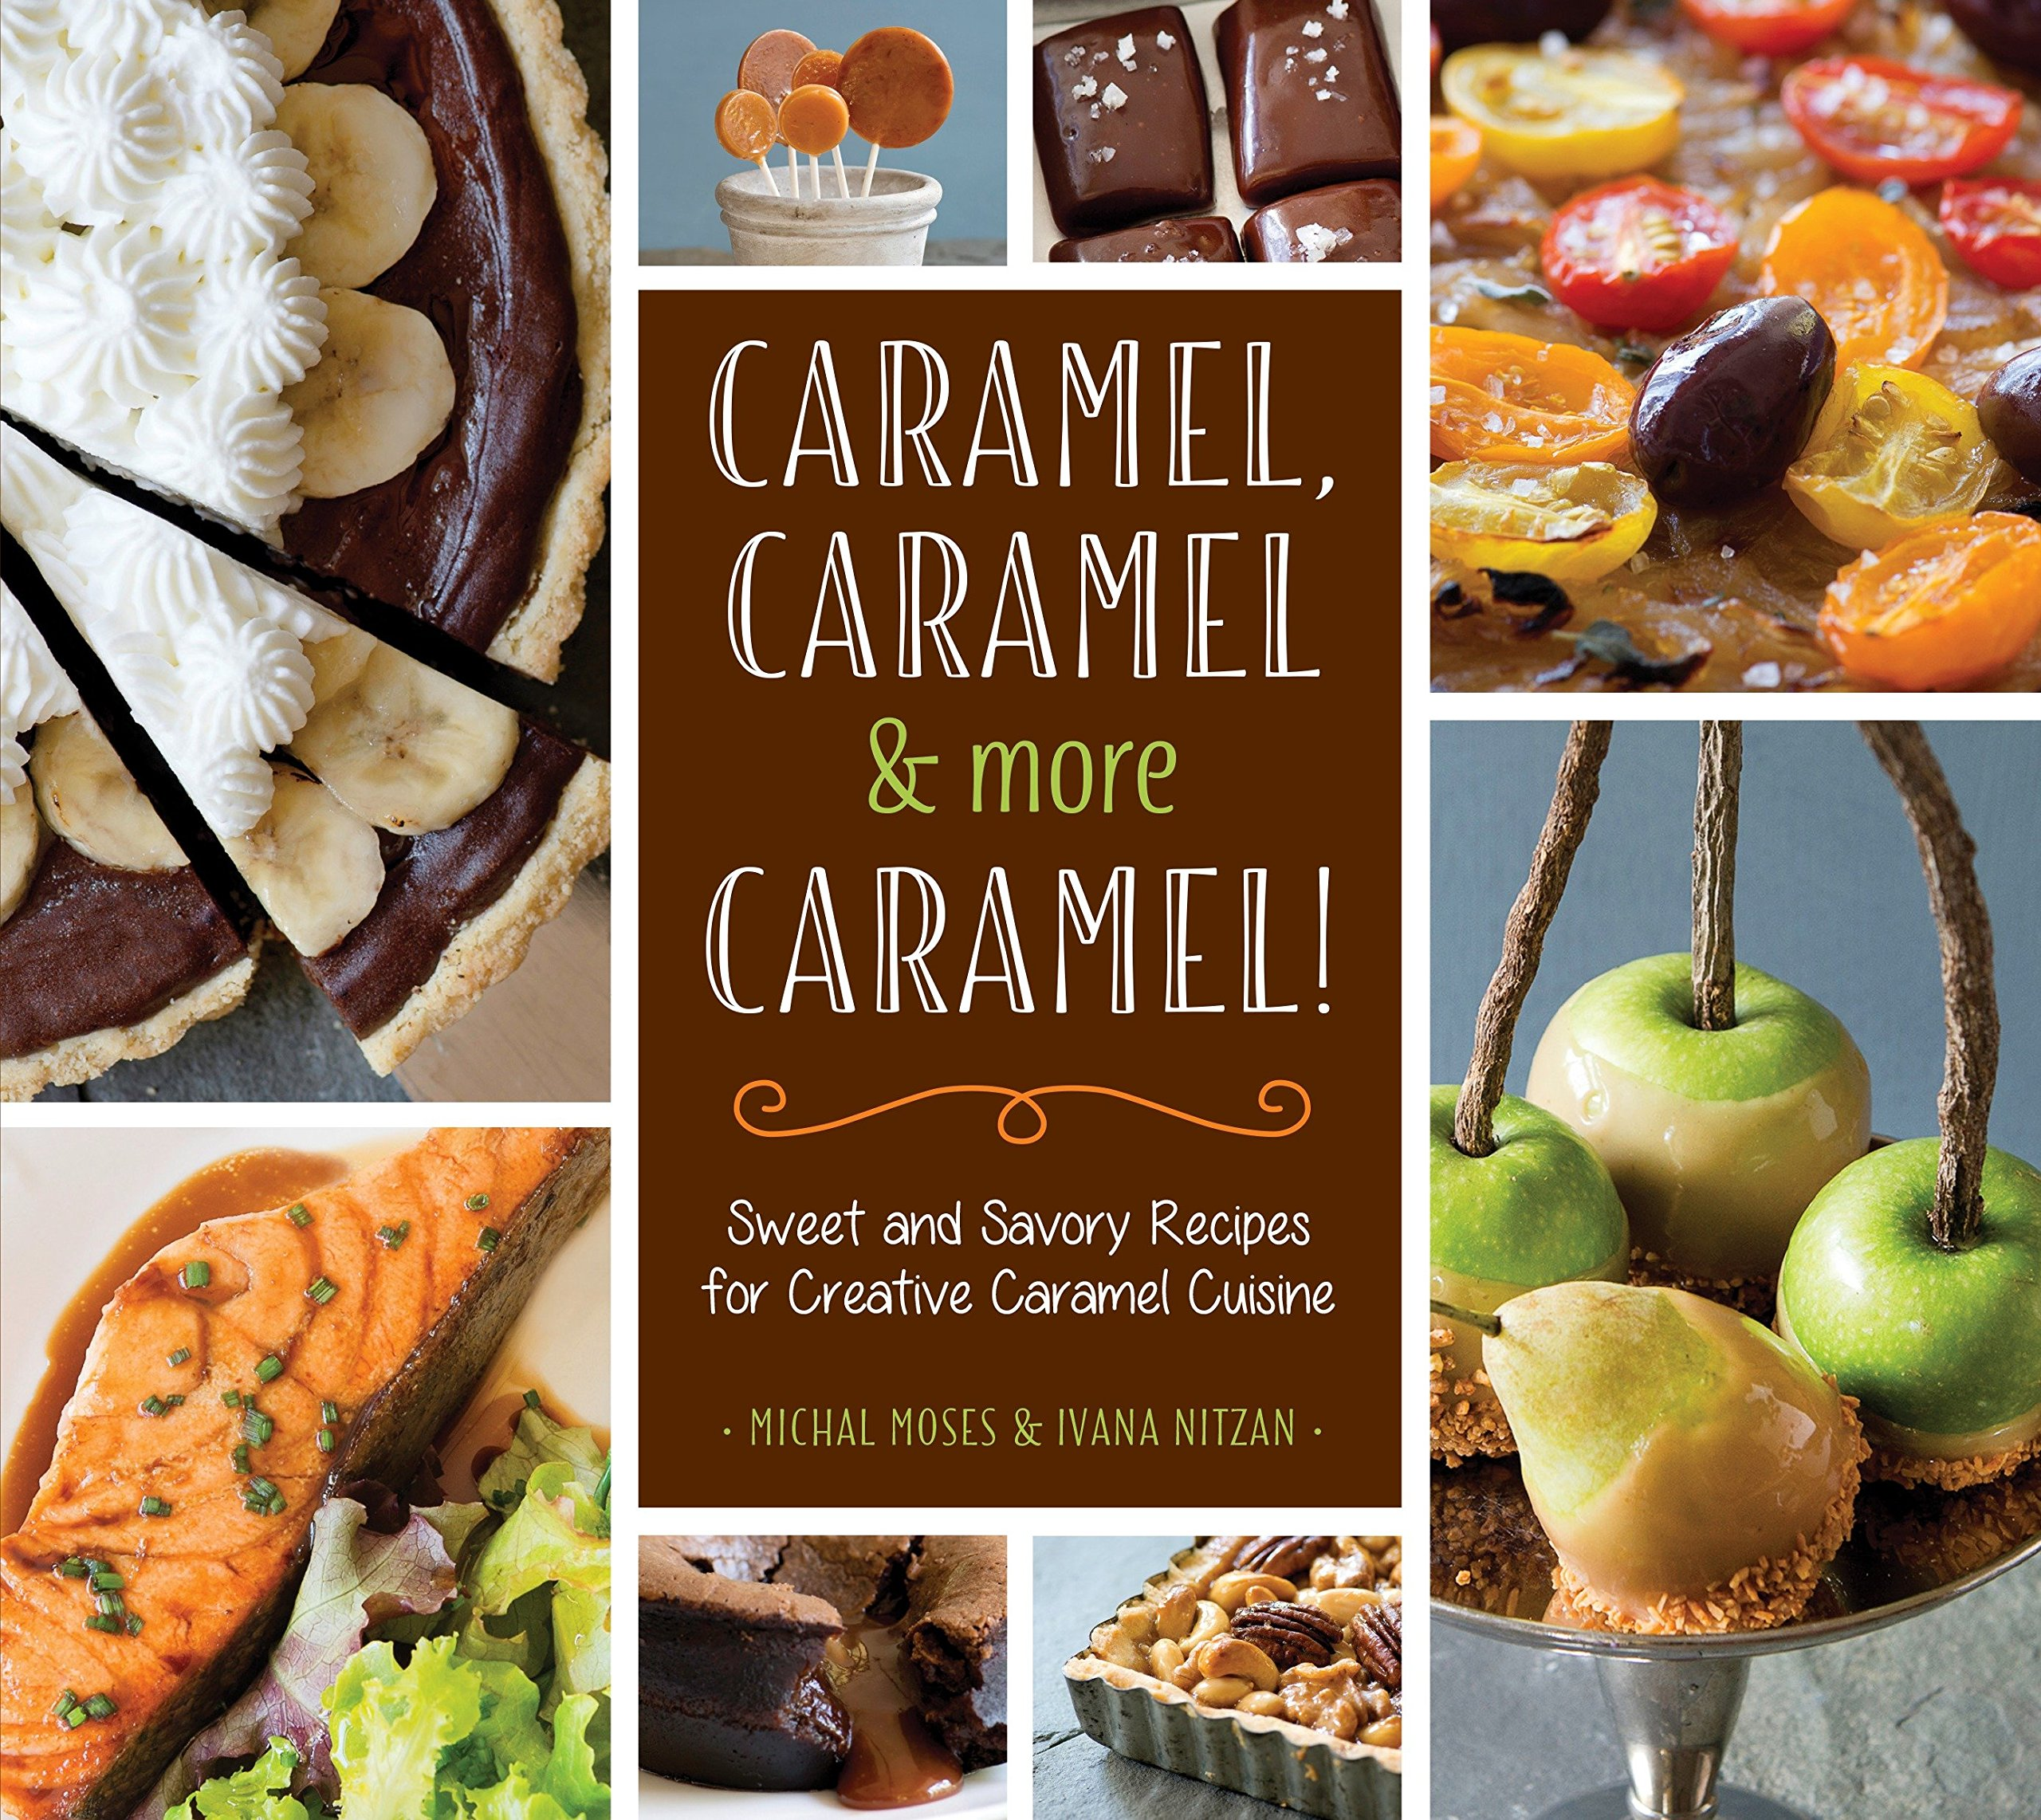 Sweet and Savory Recipes for Creative Caramel Cuisine: Amazon.es: Michal Moses, Ivana Nitzan: Libros en idiomas extranjeros